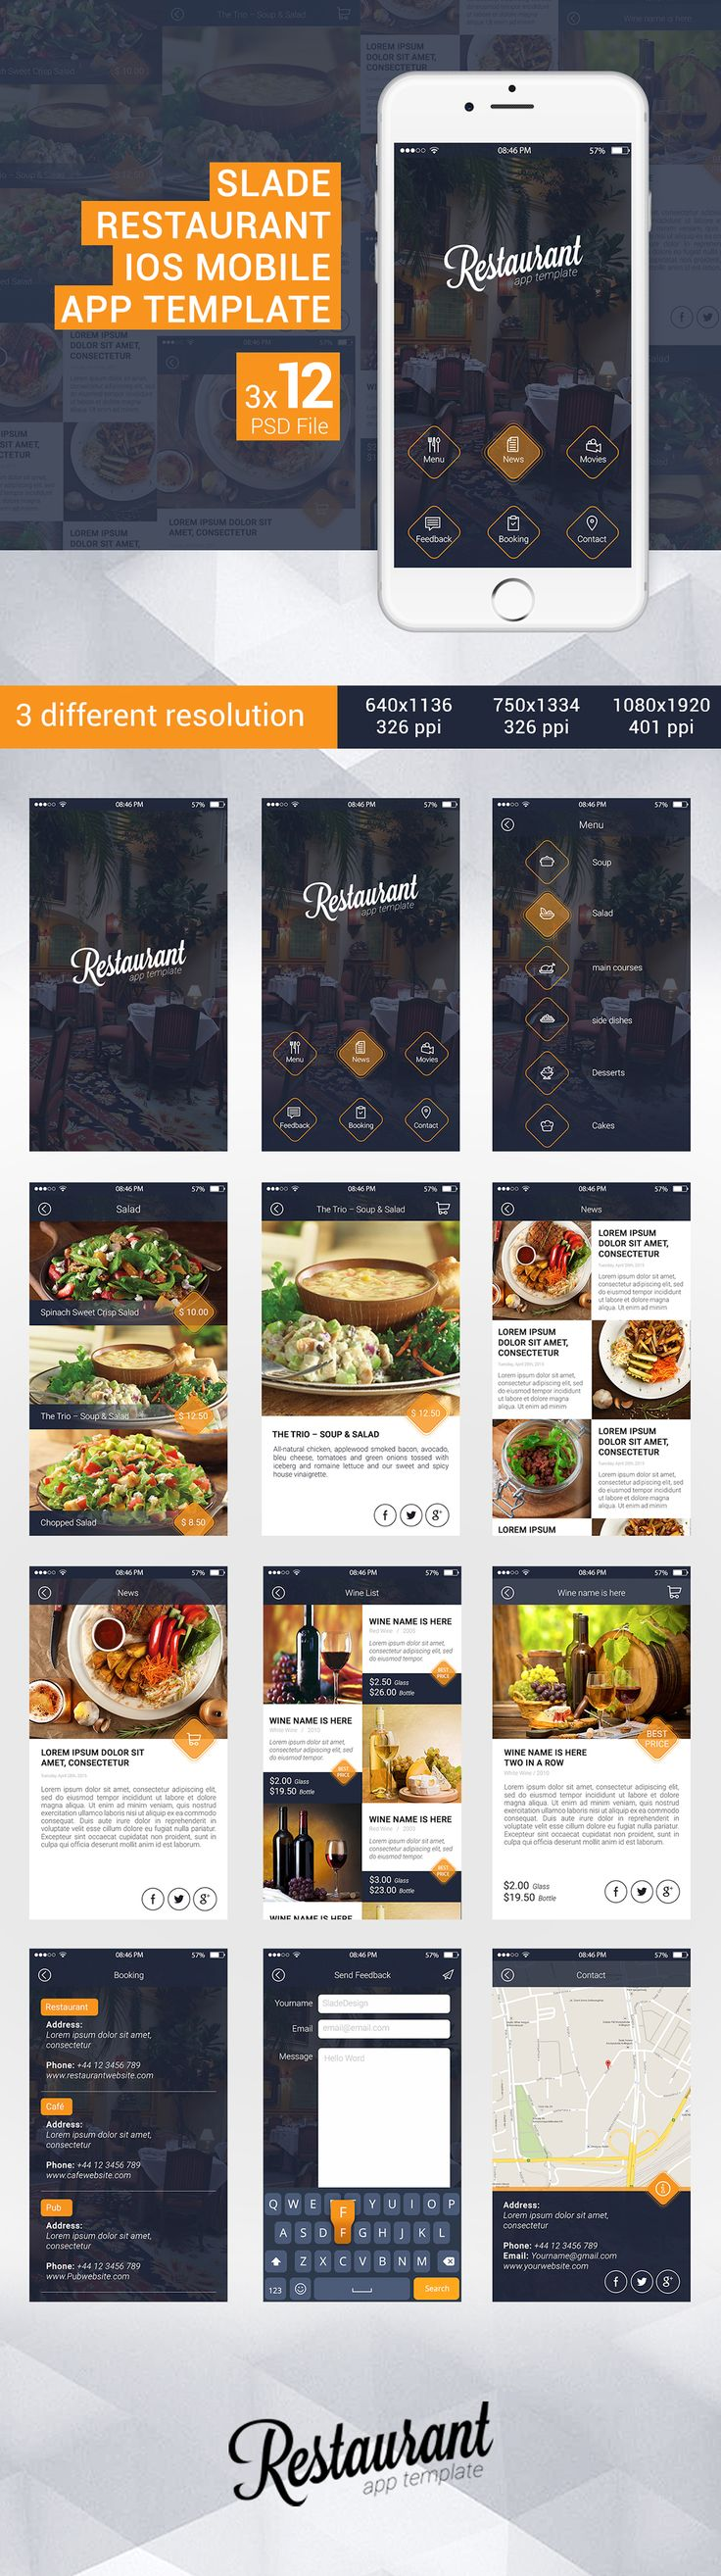 Slade Restaurant iOS Mobile App Template Restaurant app template is designed for Restaurants and Cafe lounge mobile apps. The template fits to iPhone5, iphone6, and iphone6+.this PSD file is well structured into Modules, so it would be pretty straightfo…